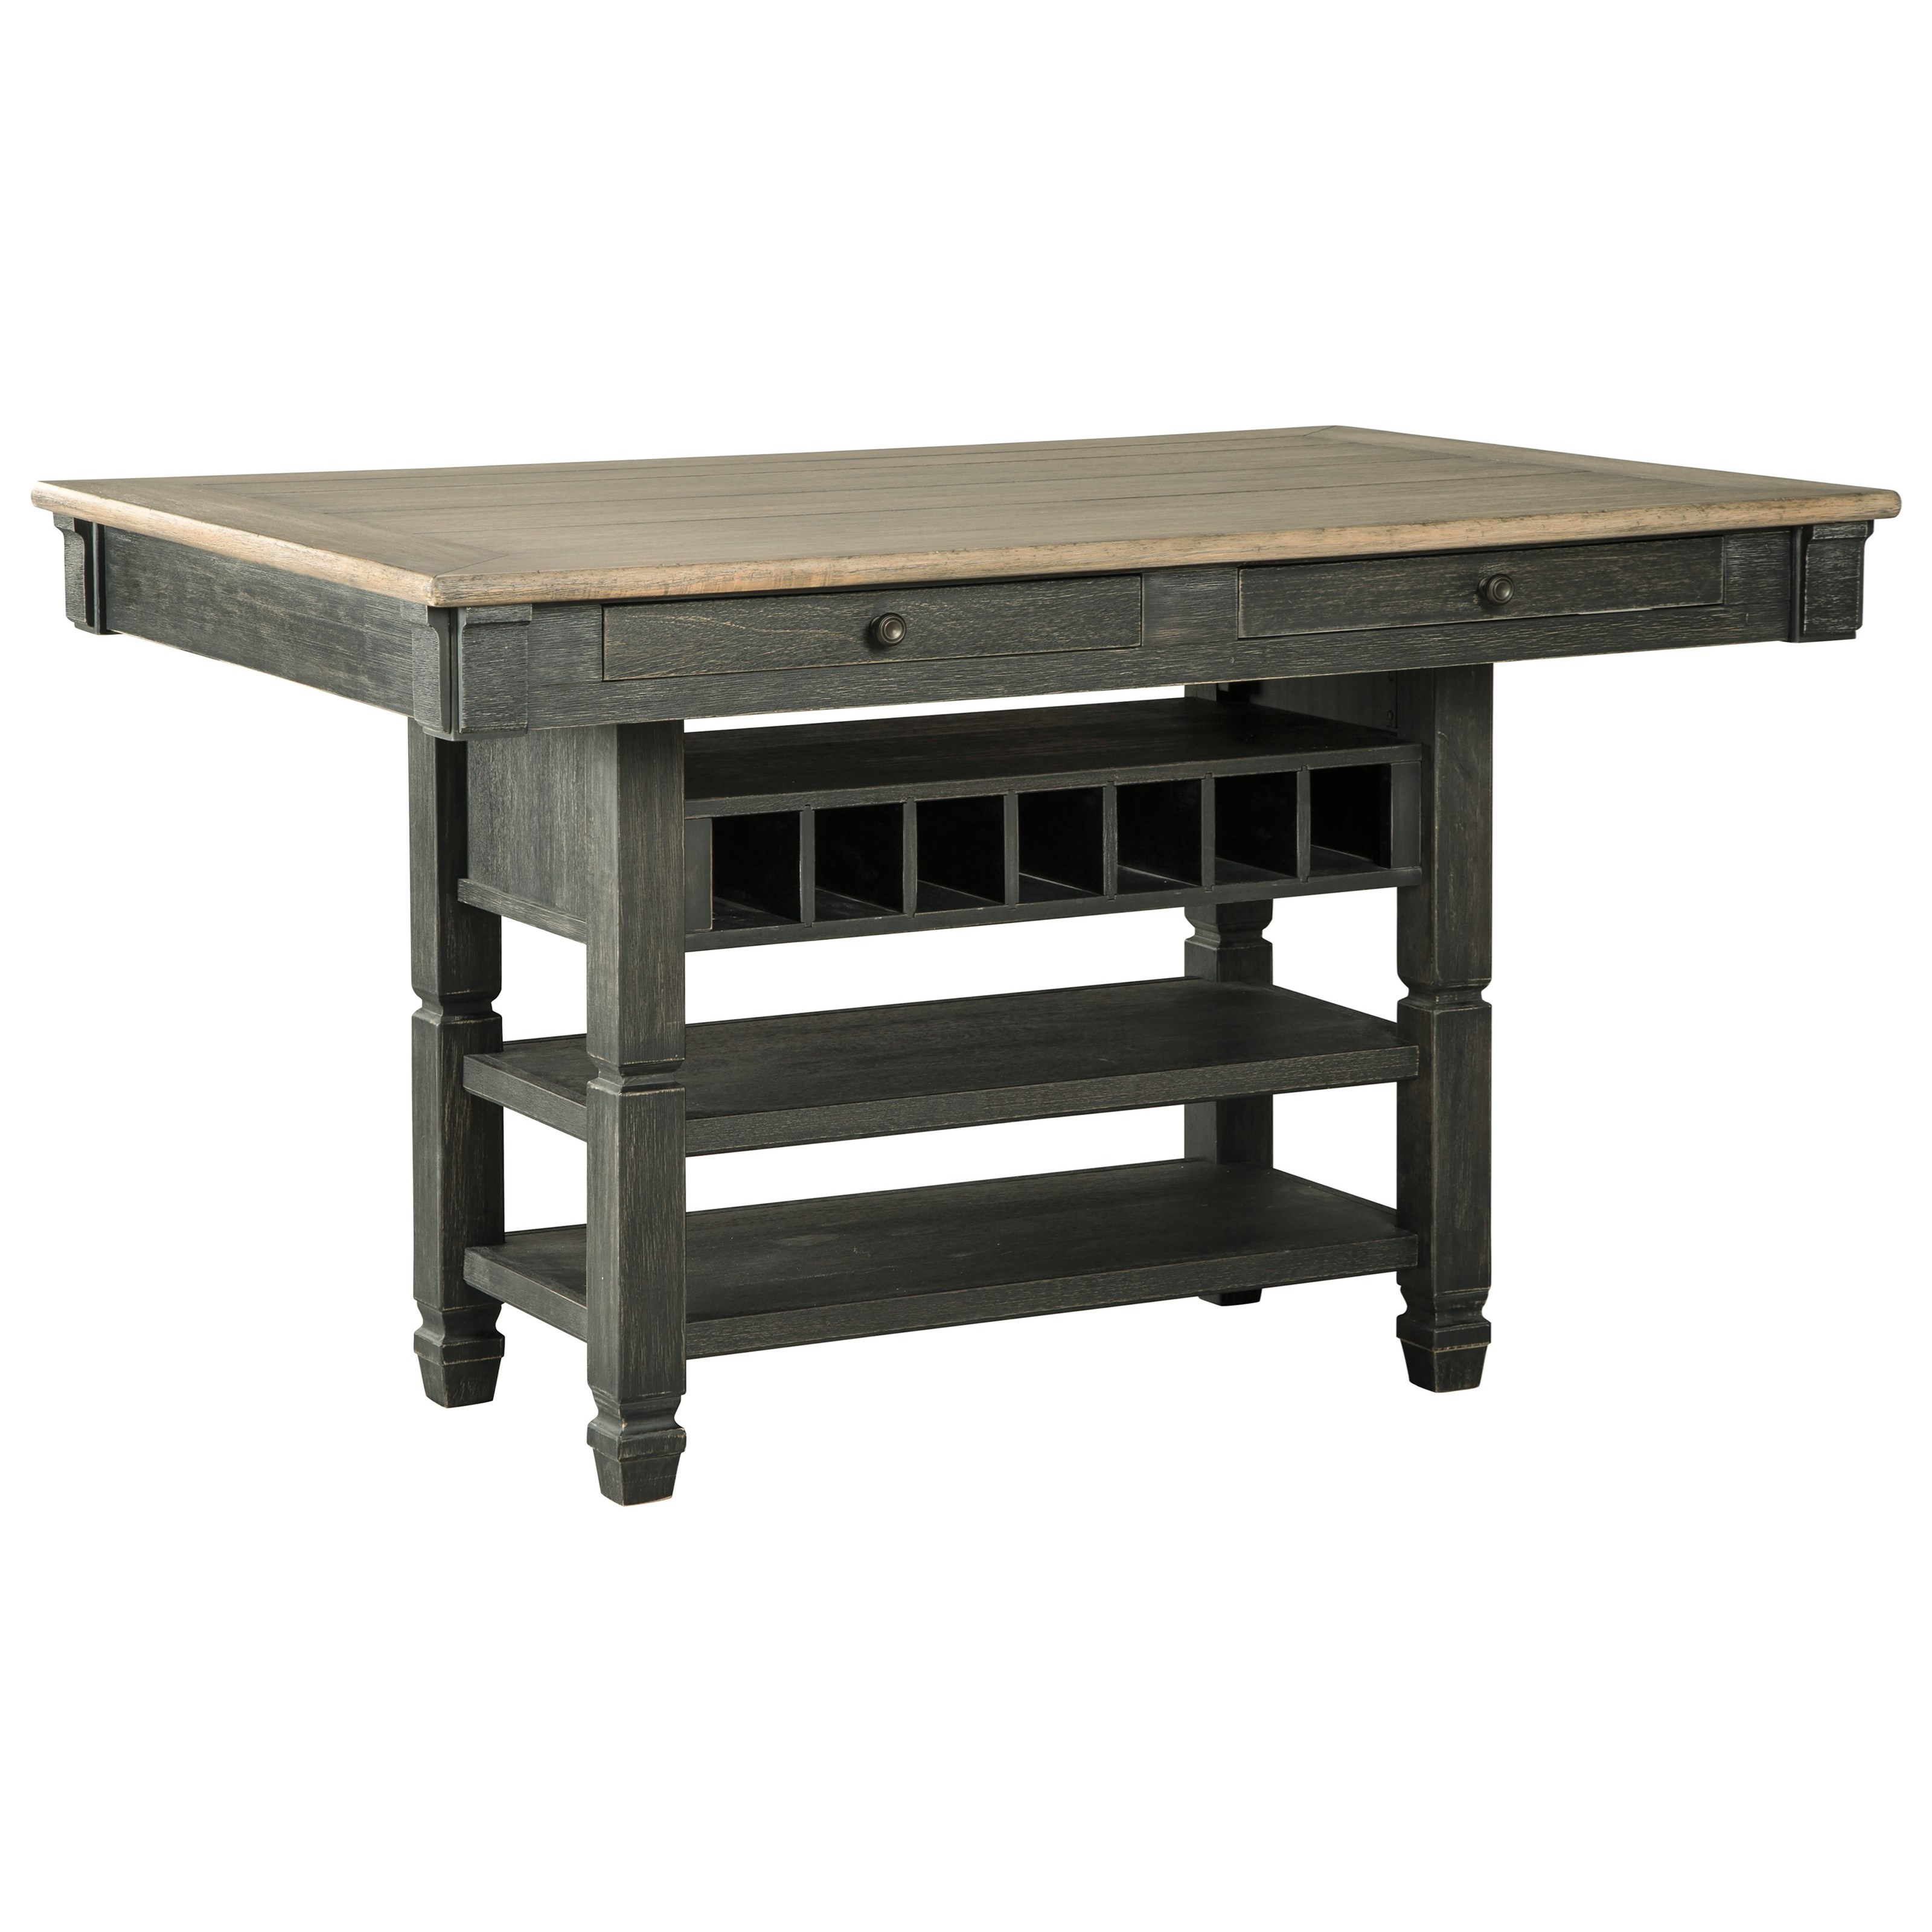 Tyler Creek Rectangular Dining Room Counter Table by Signature Design by Ashley at Northeast Factory Direct